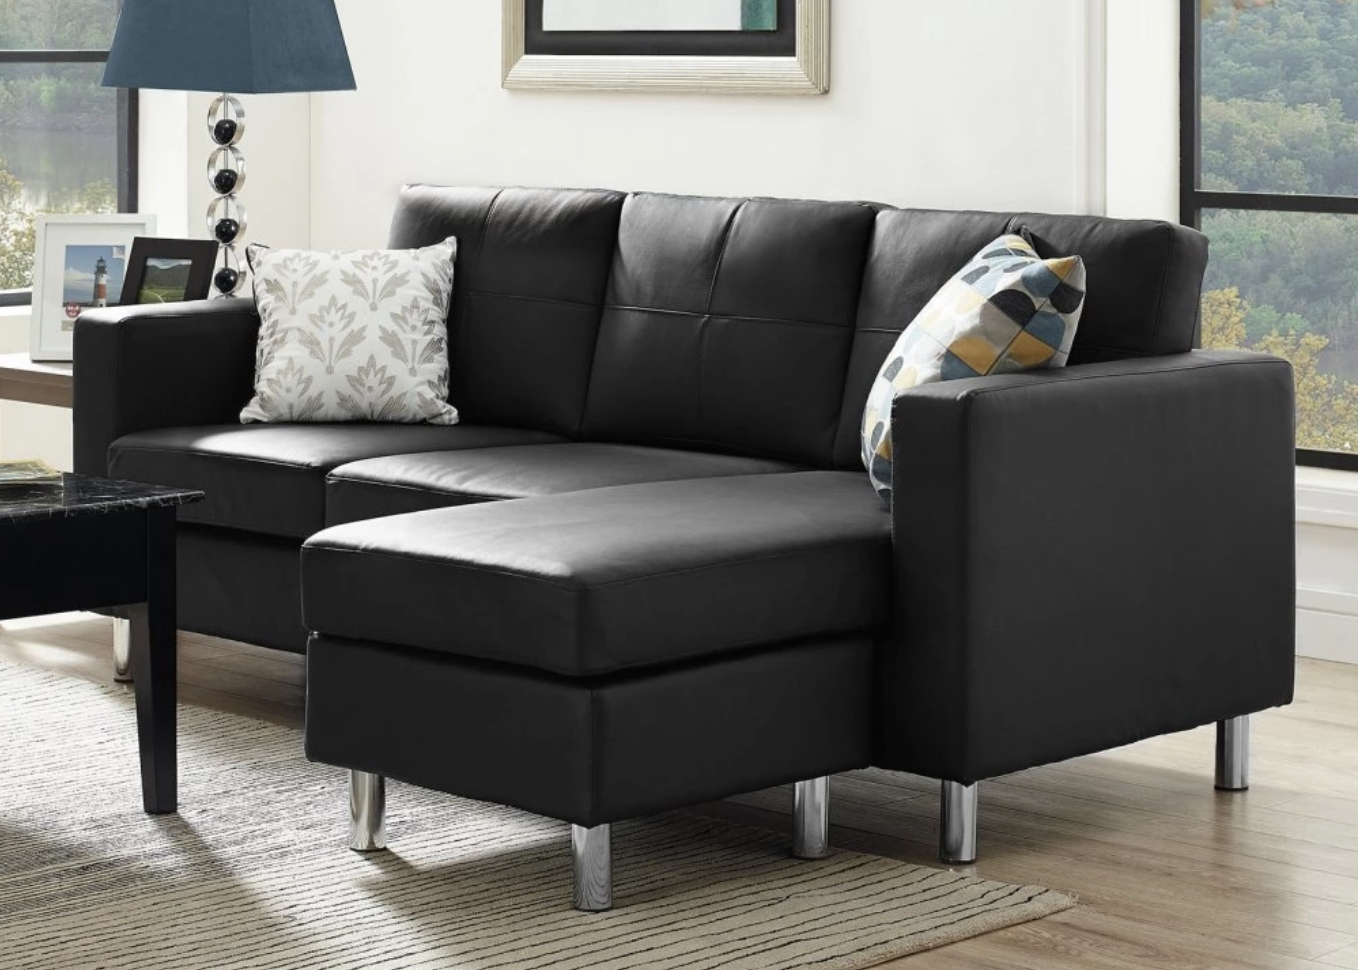 Sectional Sofas For Small Spaces With Regard To Best And Newest 75 Modern Sectional Sofas For Small Spaces (2018) (View 18 of 20)